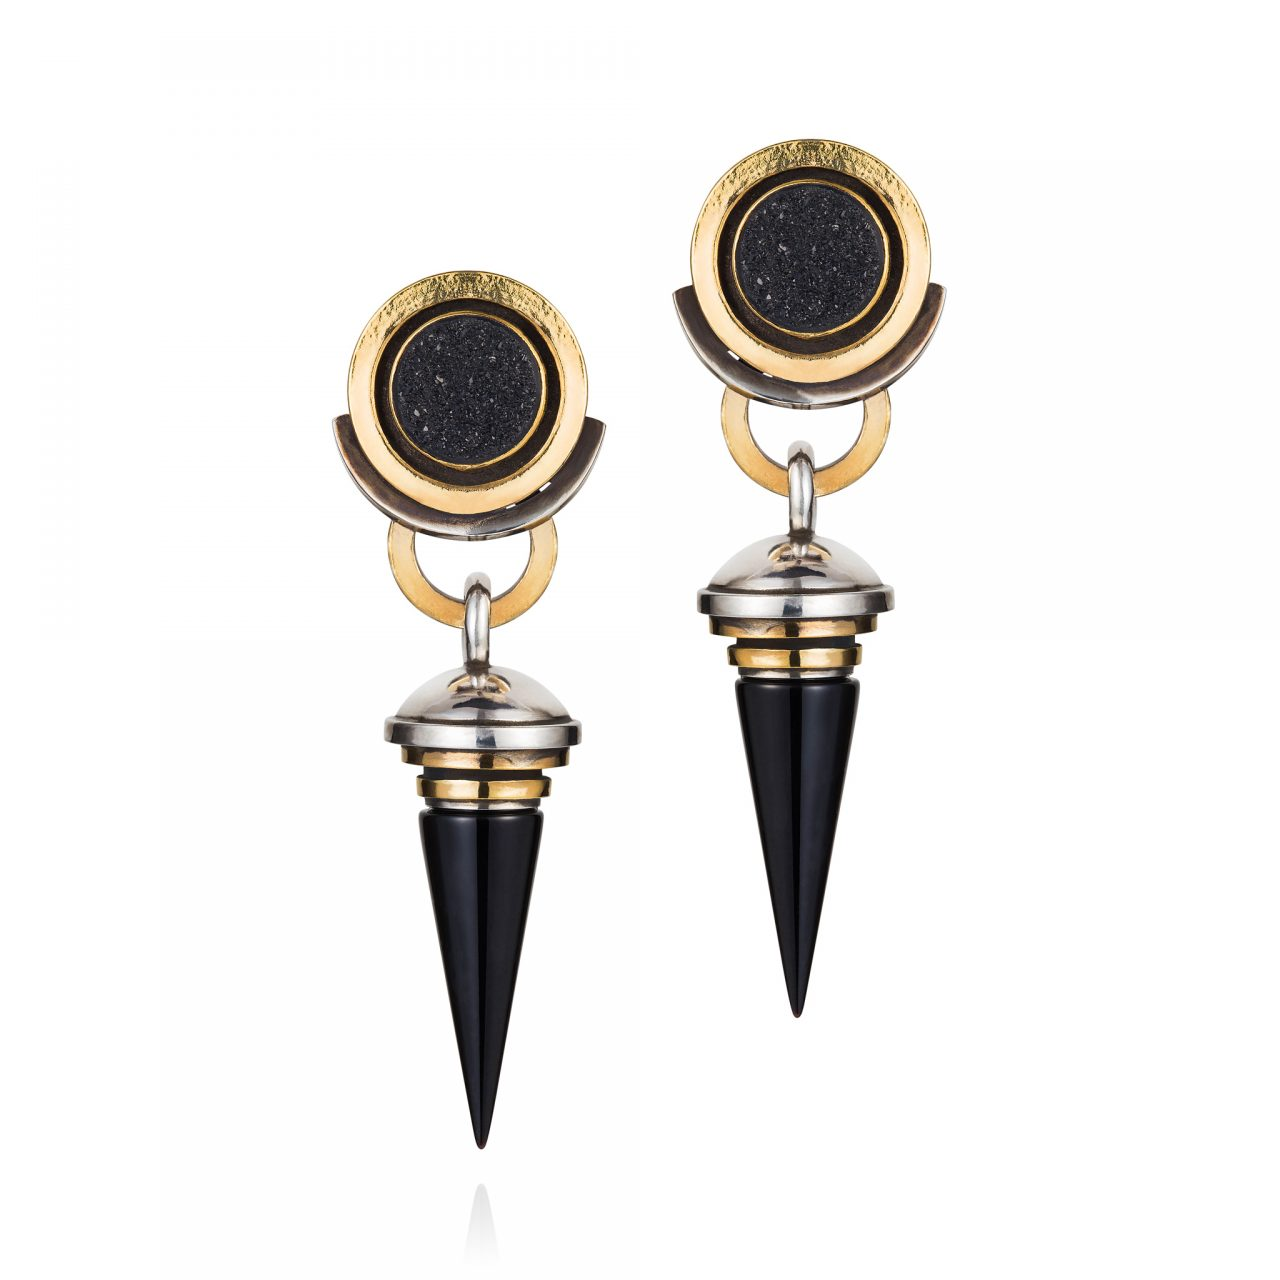 Druzies and Onyx Earrings